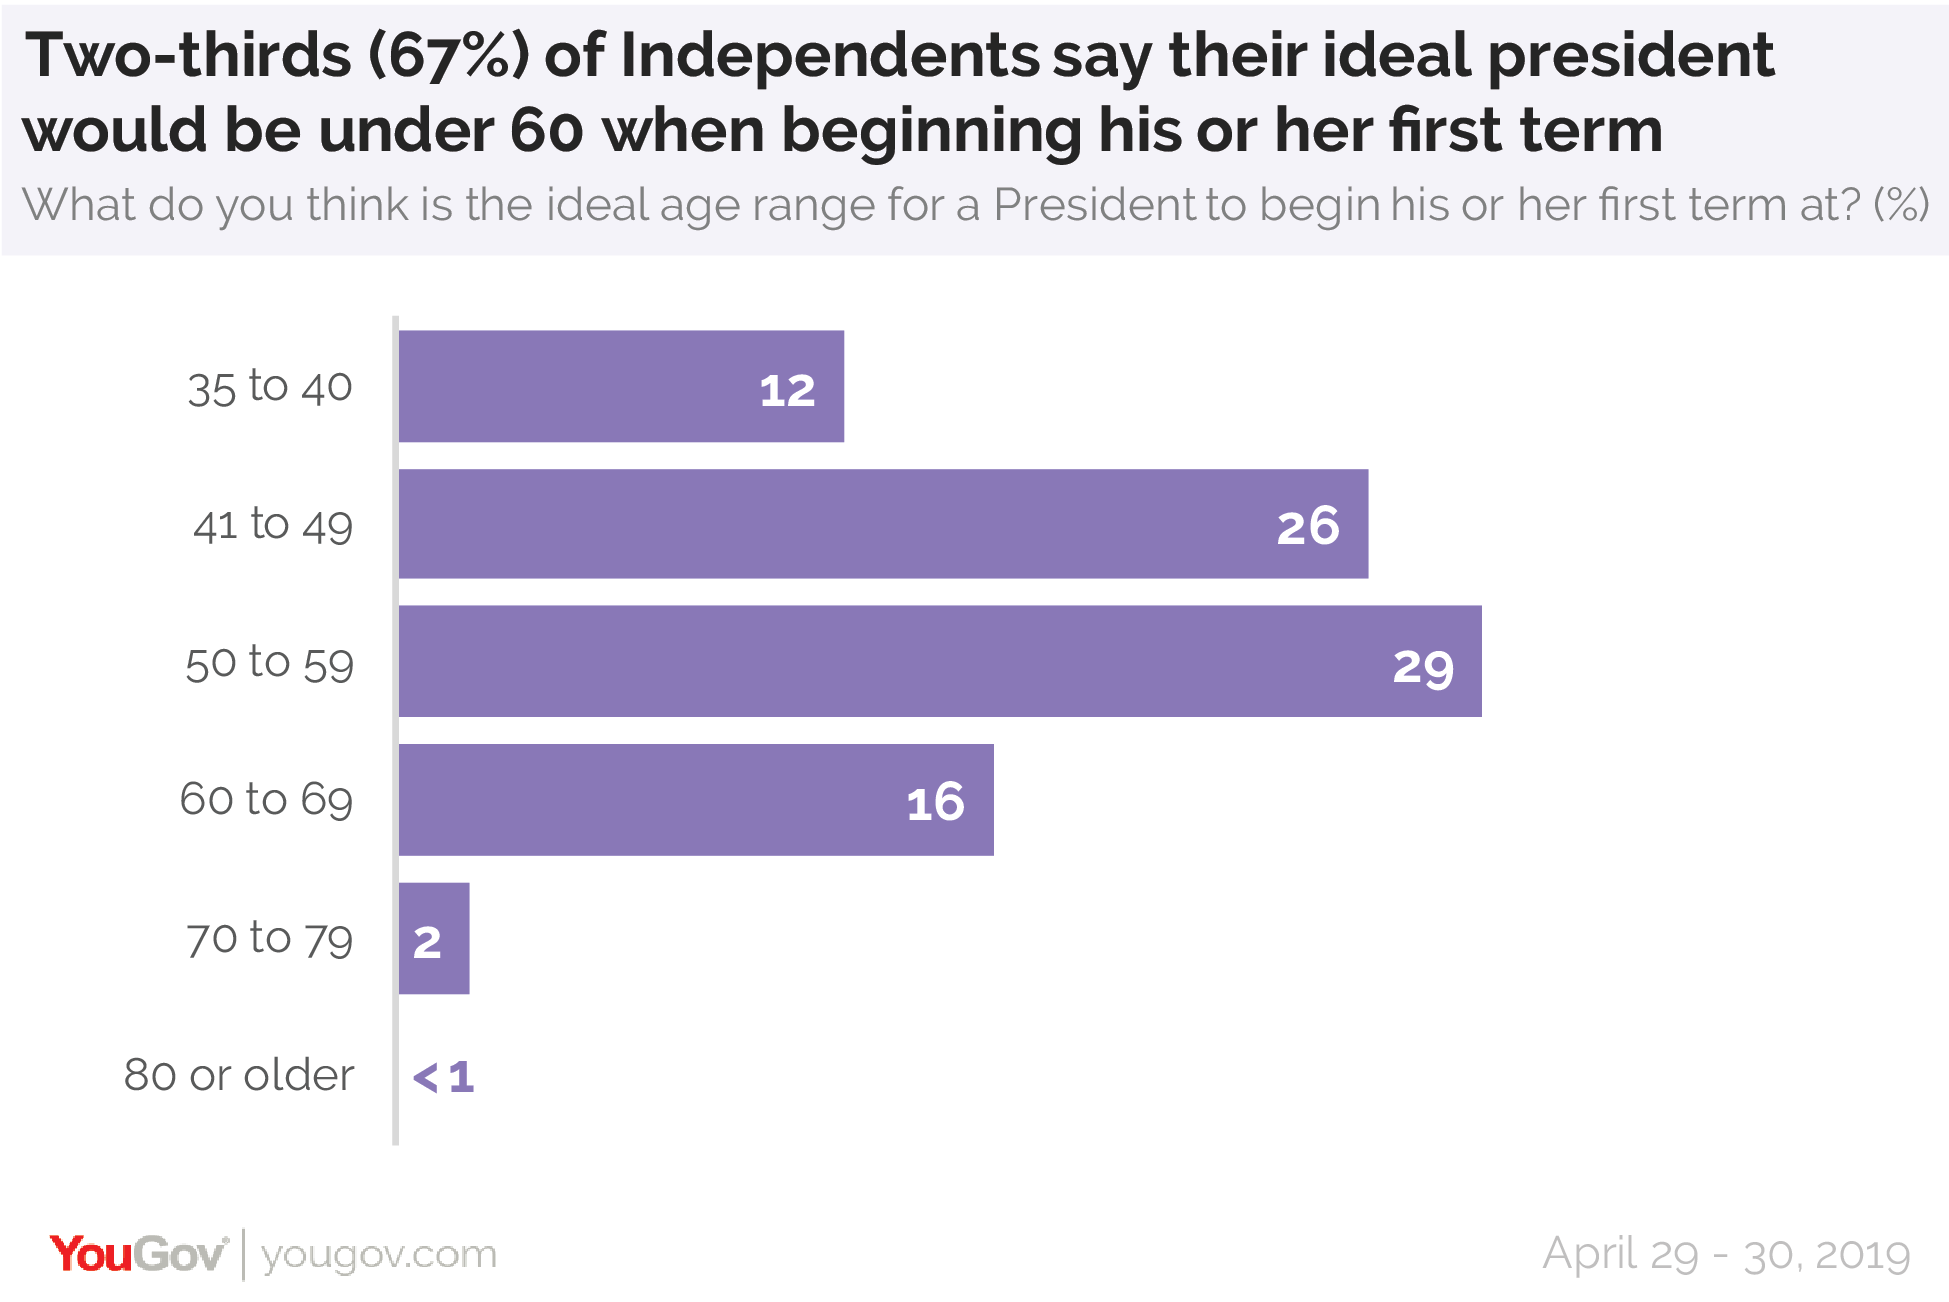 Two-thirds (67%) of Independents say their ideal president would be under 60 when beginning his or her first term